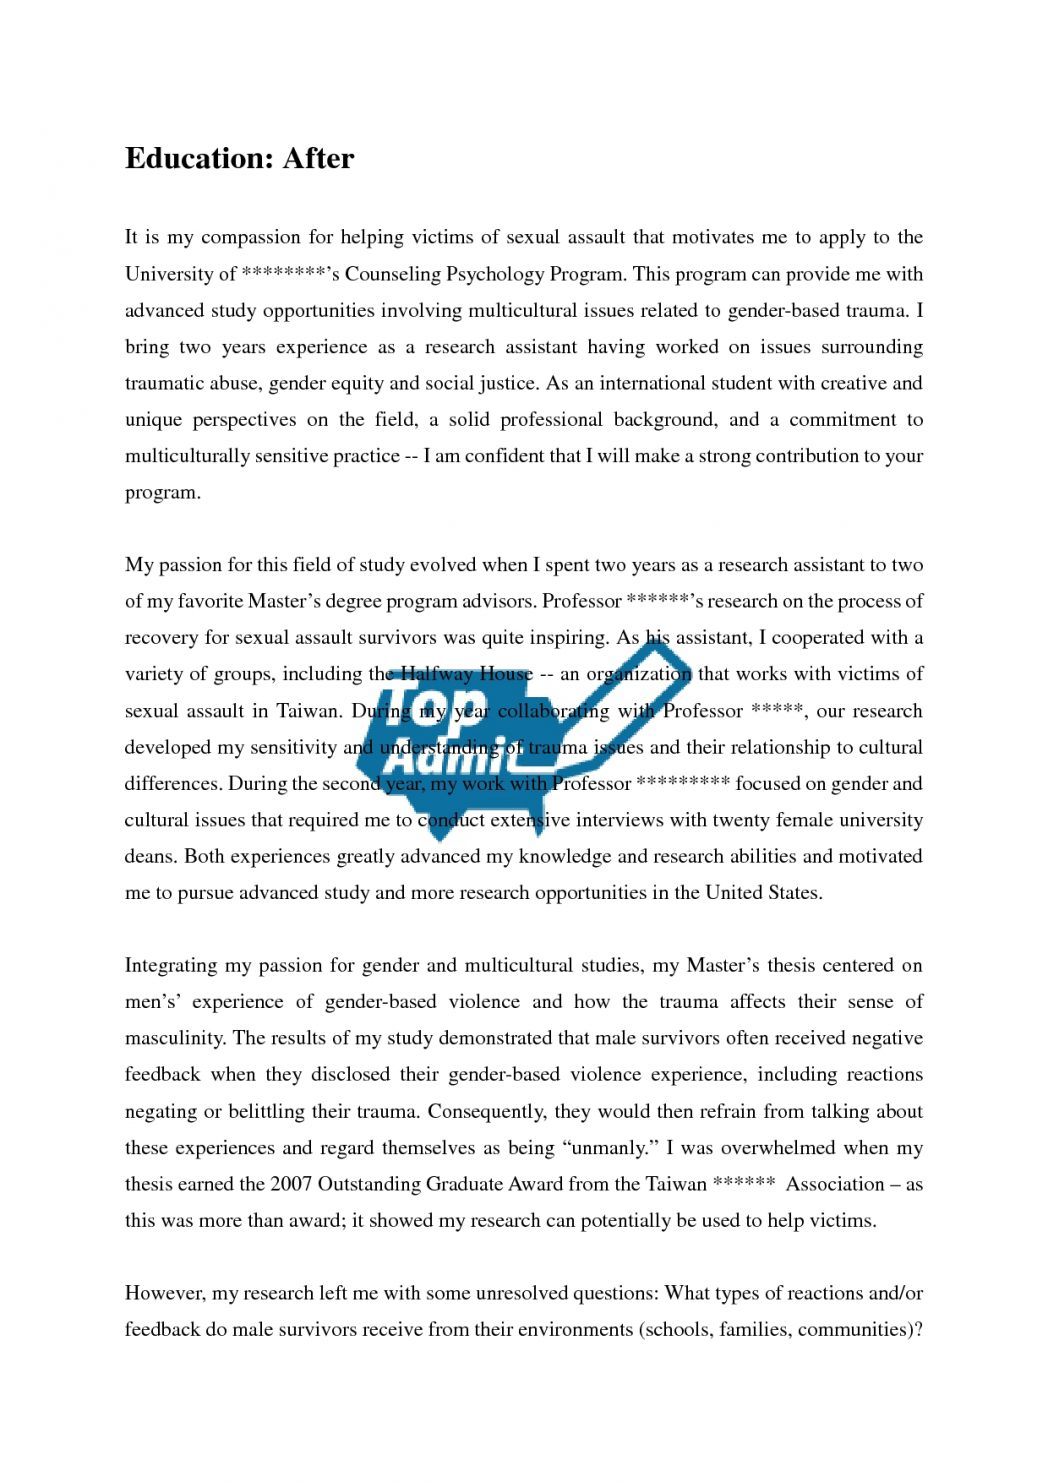 004 Essay On The Most Dangerous Game How To Write An Su Interests Sample Academic Samples 1048x1482 Impressive Study Questions And Answers Discussion Full